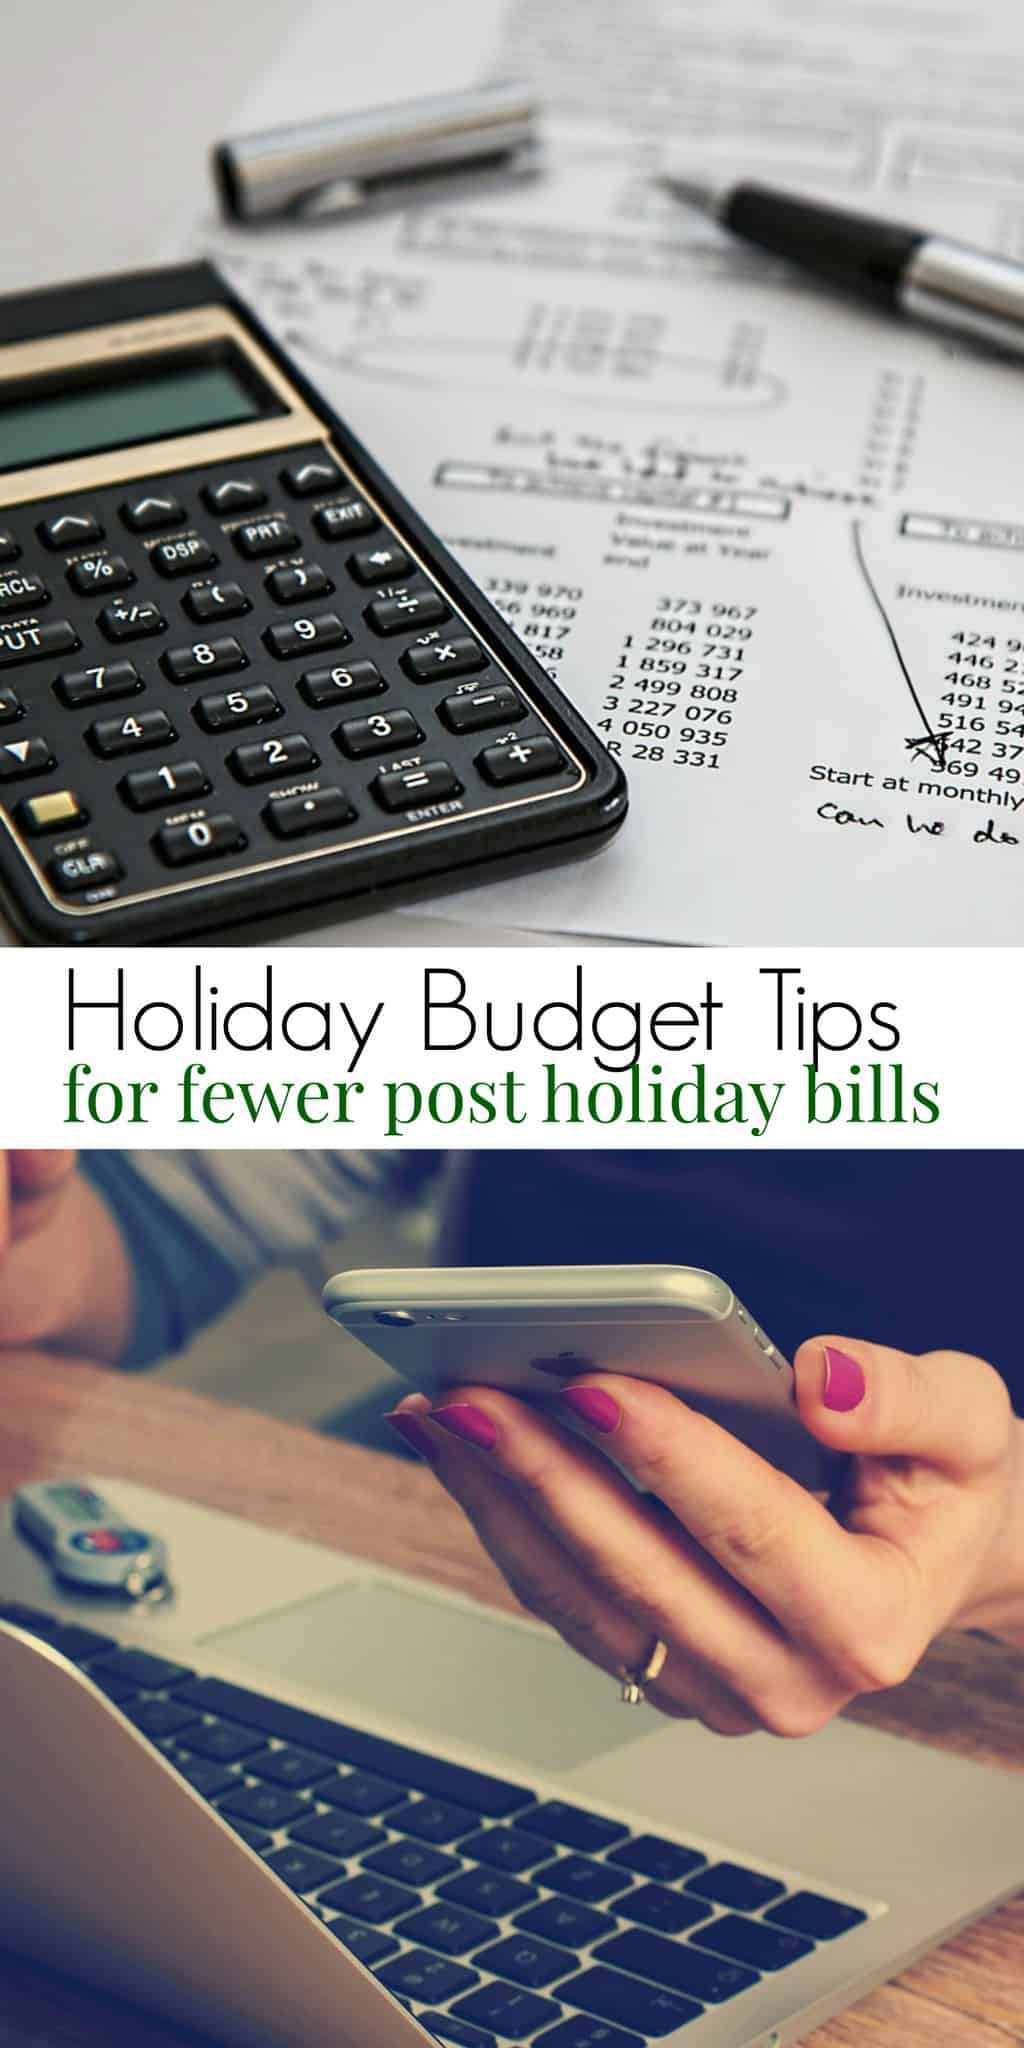 Holiday Budget Tips and Quick Side Hustles for Fewer Post Holiday Bills